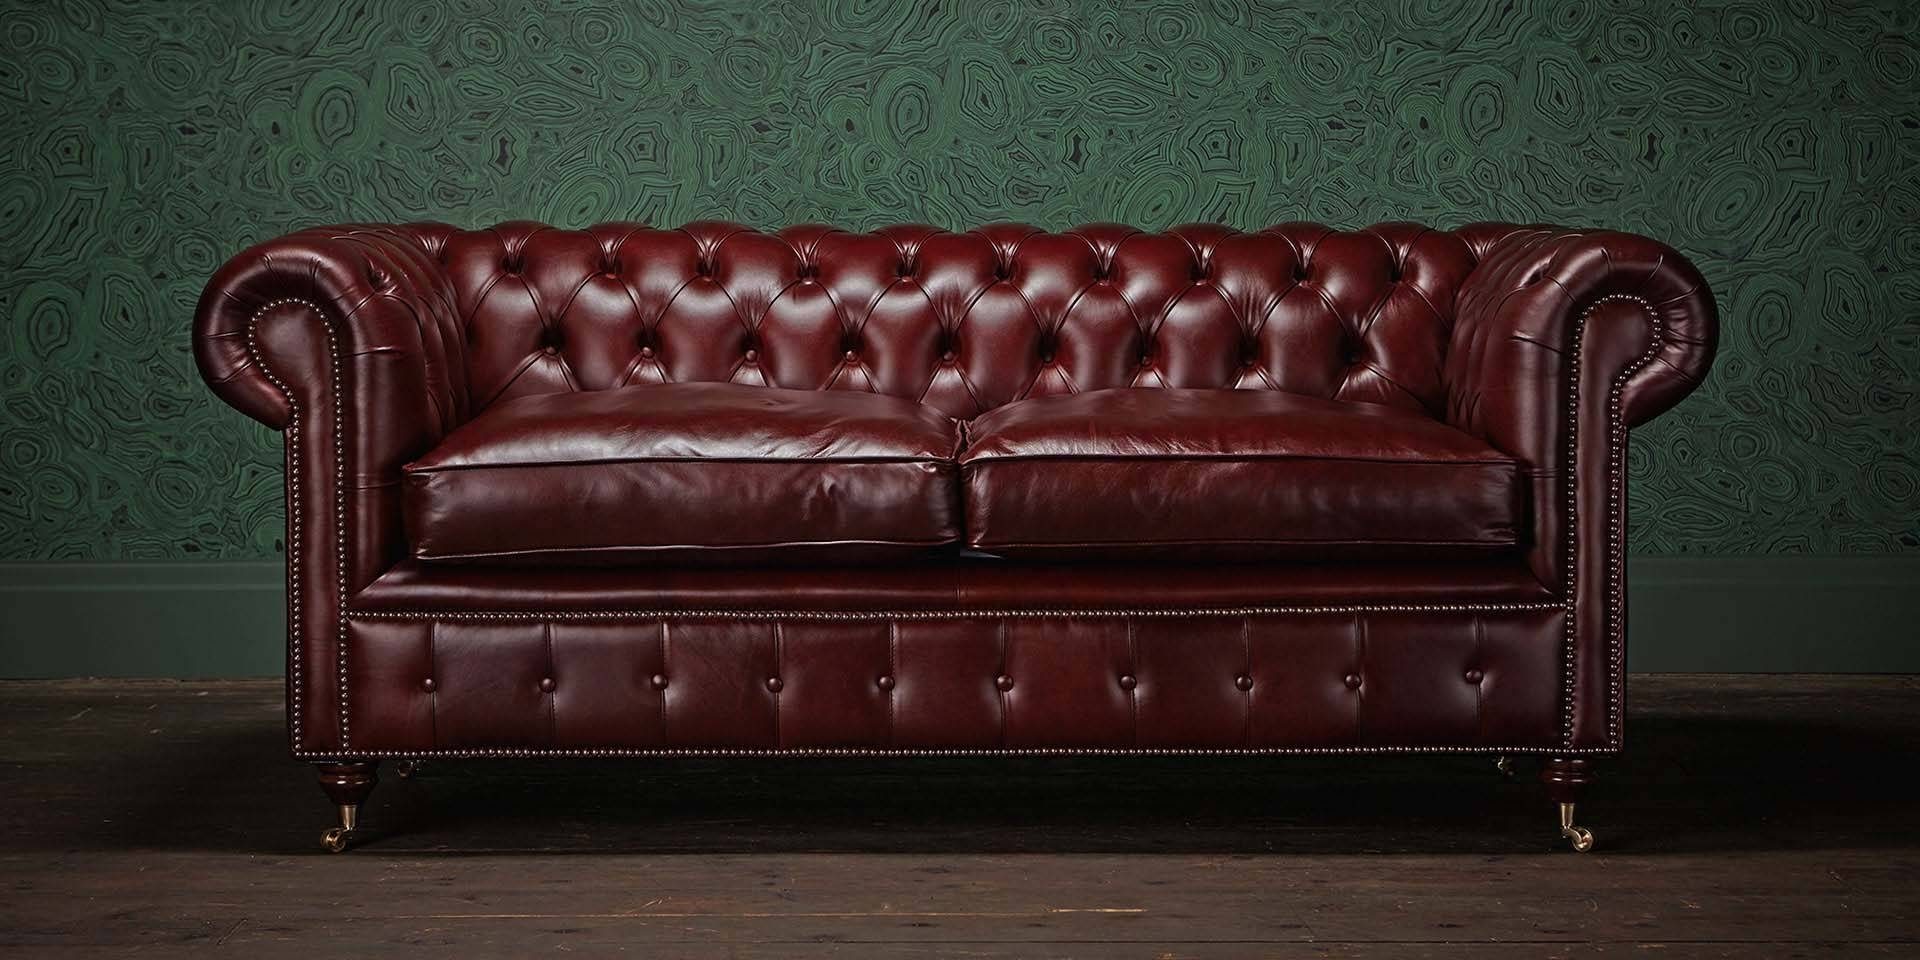 Chesterfields Of England | The Original Chesterfield Company Regarding Red Leather Chesterfield Sofas (View 6 of 15)